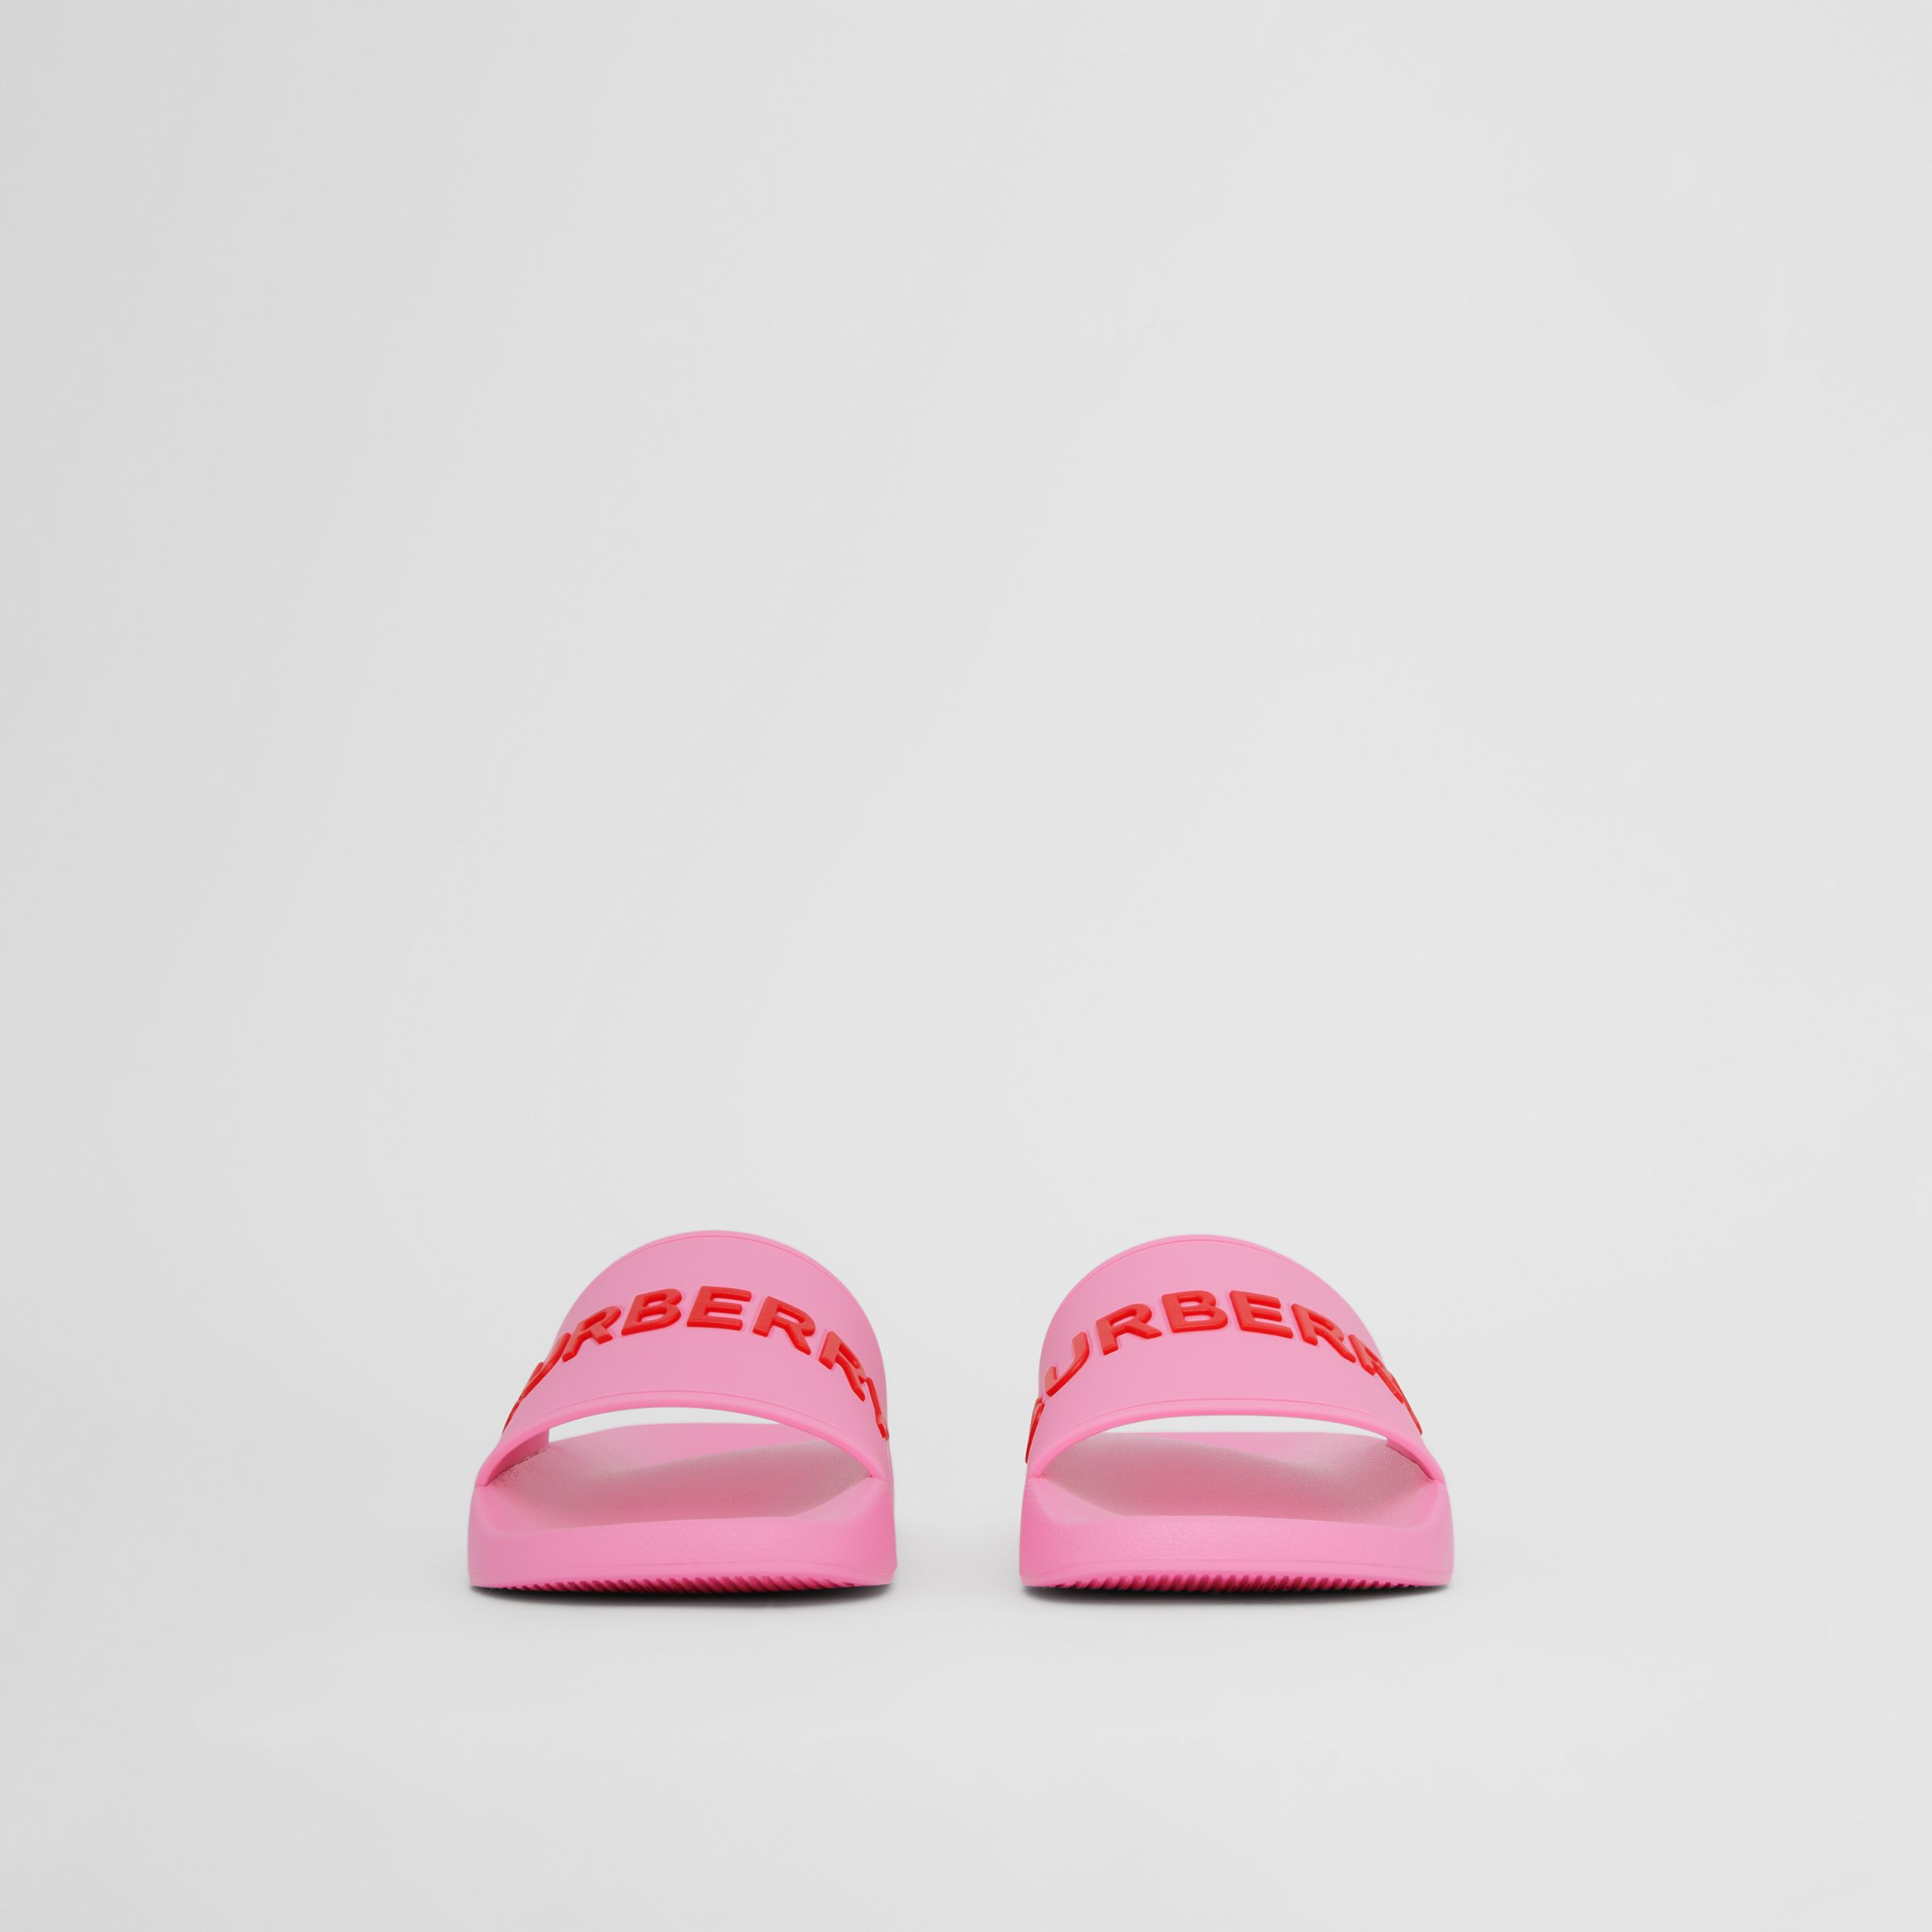 Logo Detail Slides in Bubblegum Pink - Women | Burberry - 3